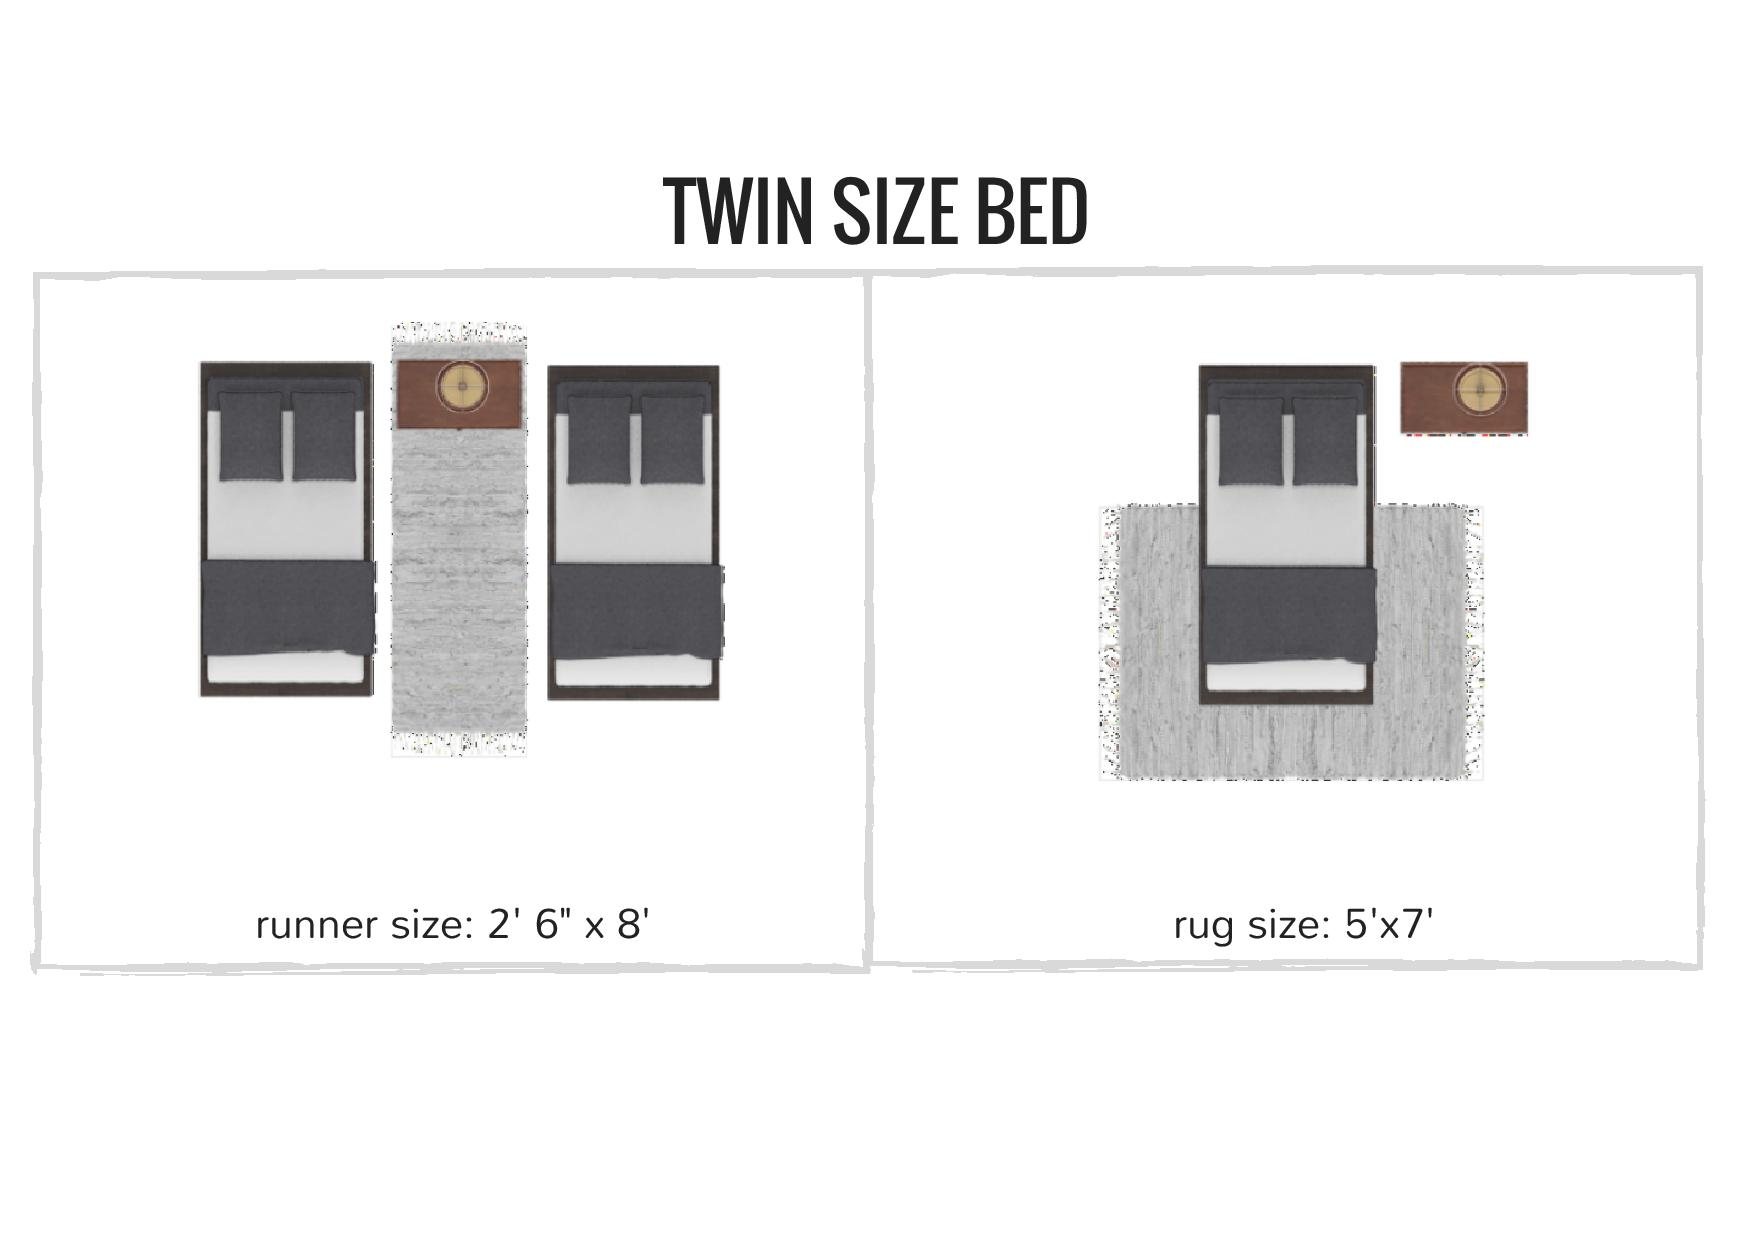 rug sizing and placement guide - what size rug do you need for your twin size bed / bedroom